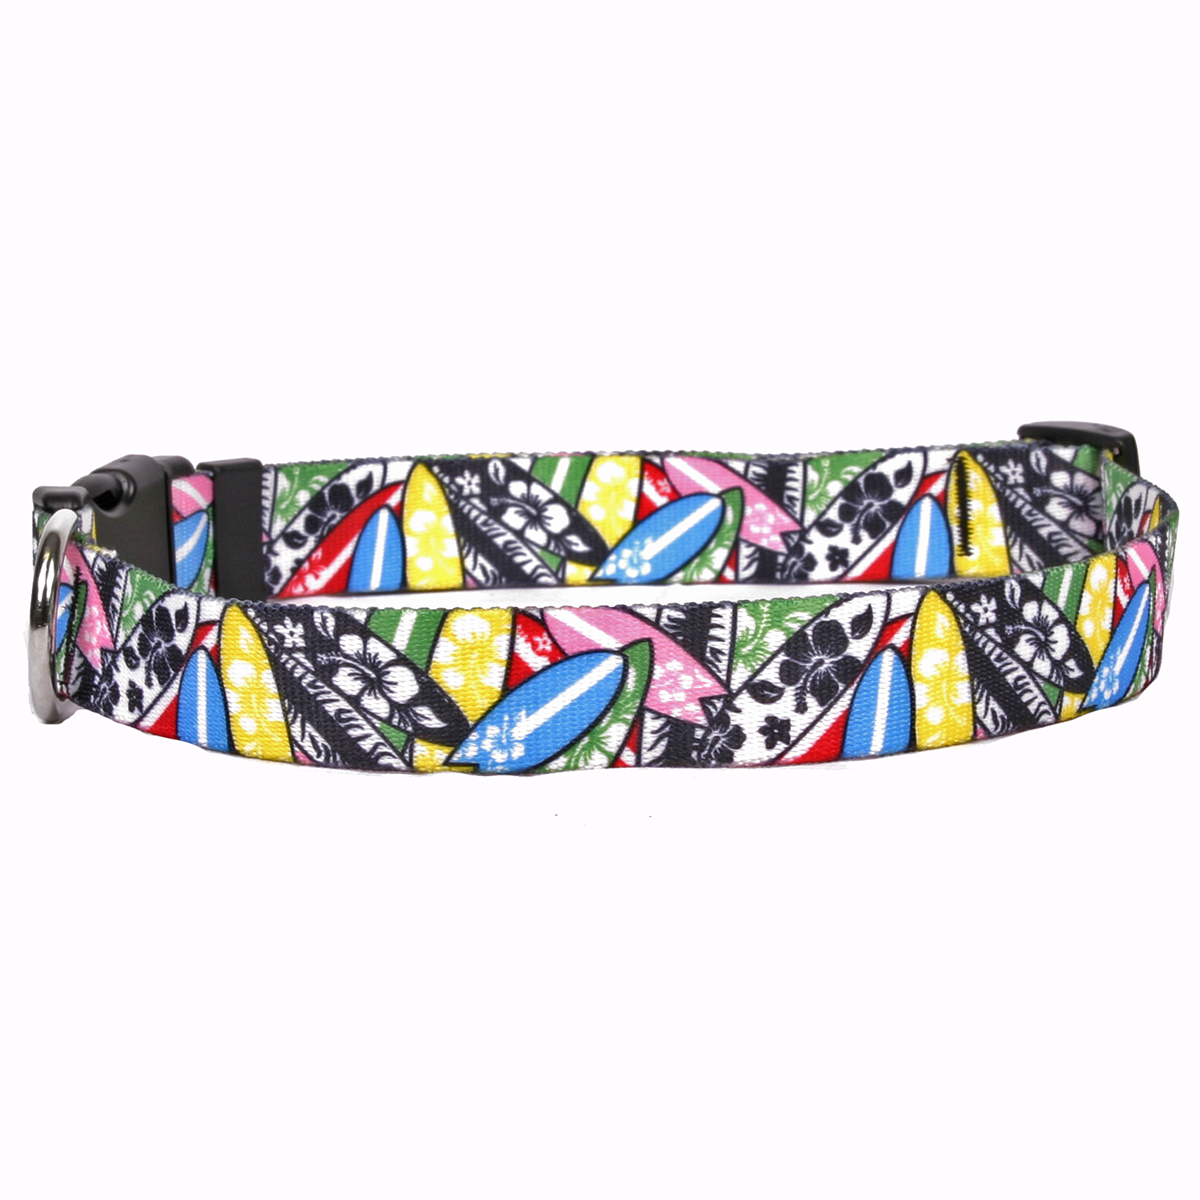 Yellow Dog Design Surfboard Collar, Harness & Leash